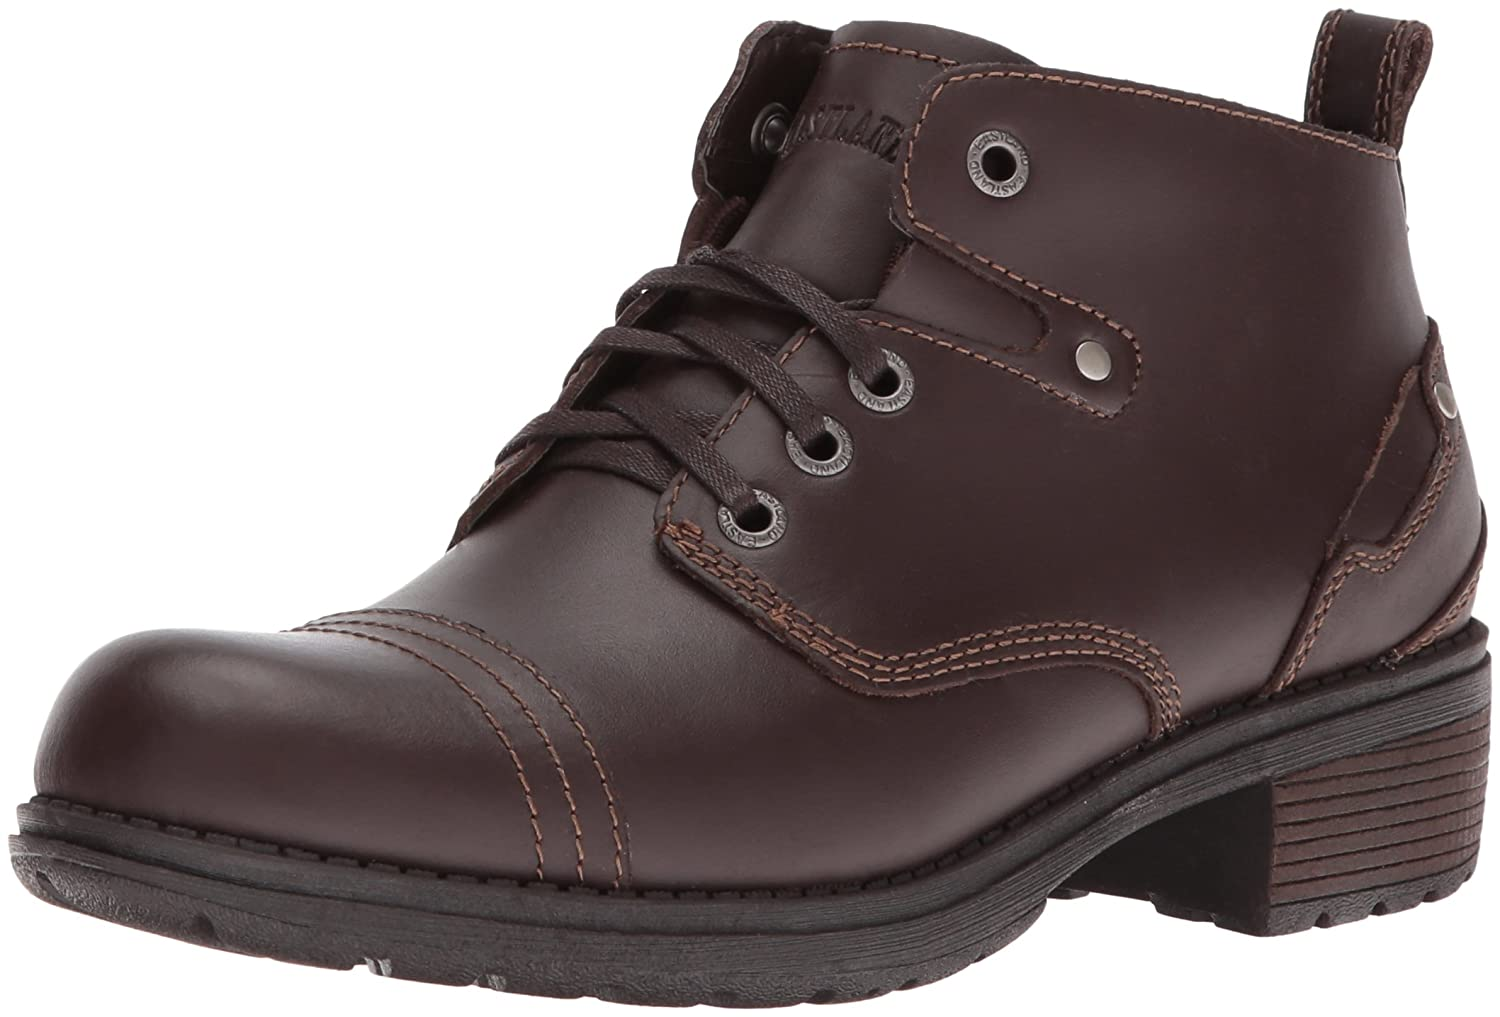 Eastland Women's Overdrive Ankle Boot B002DYK38A 6.5 B(M) US|Brown